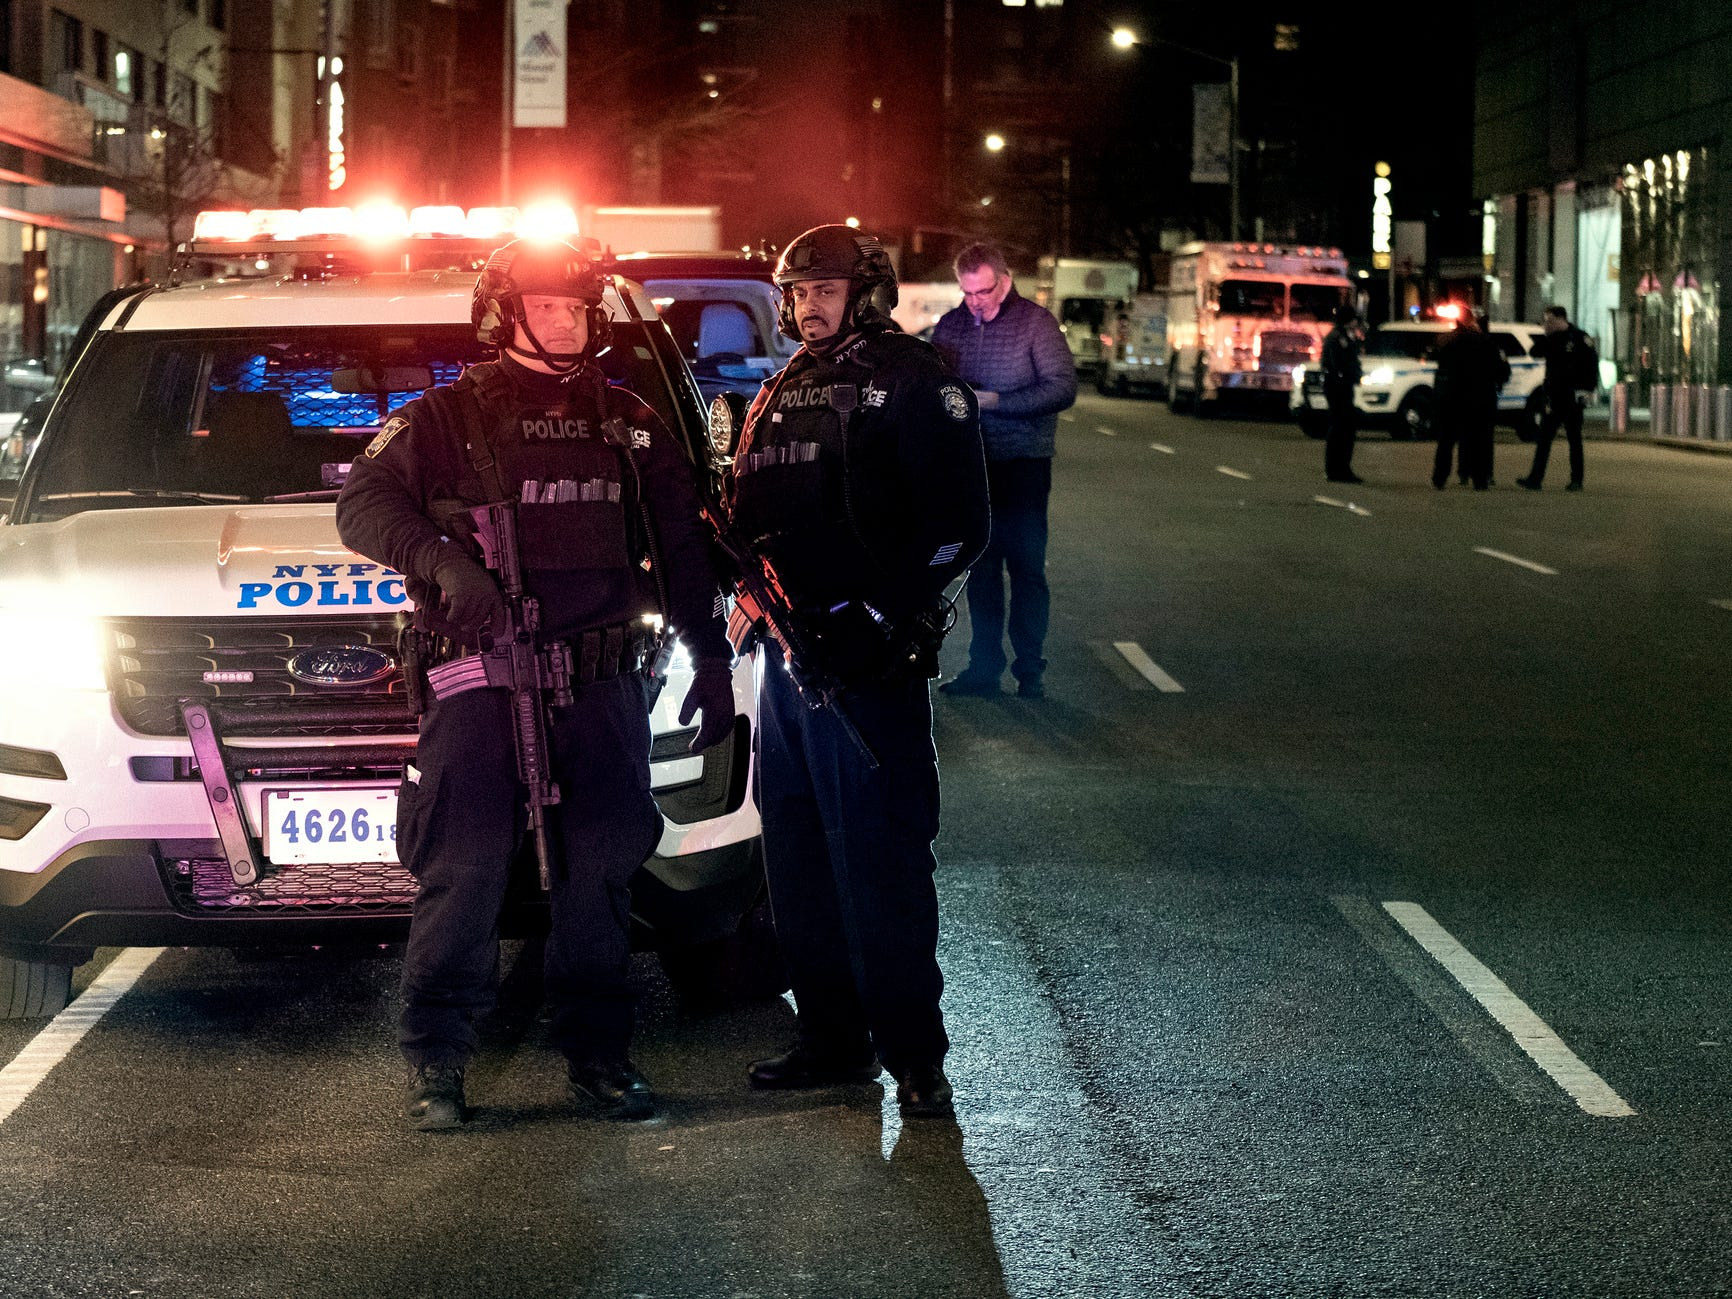 New York City police officers stand by near the Time Warner Center in New York Thursday, Dec. 6, 2018, after a bomb threat was called into the building and occupants were evacuated, including CNN employees. Police units swept the building with the NYPD bomb squad on standby.